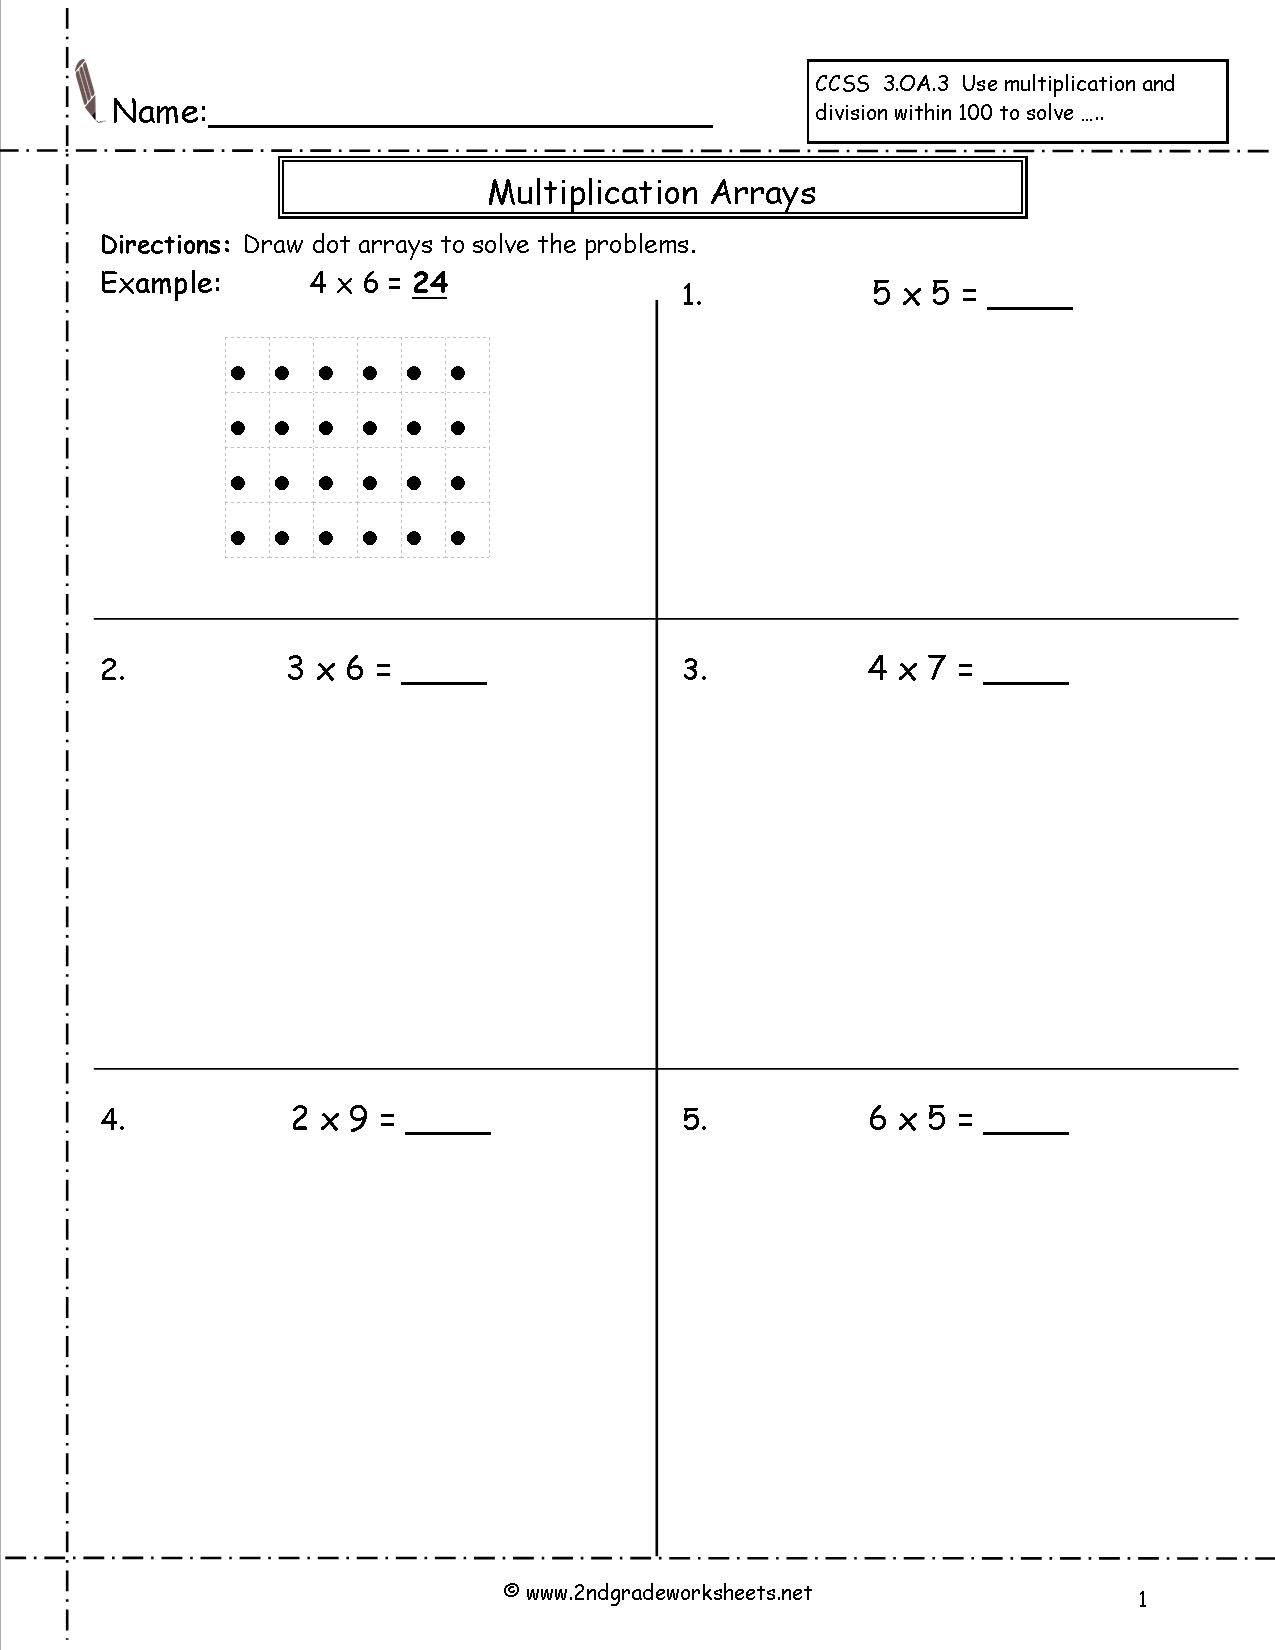 multiplication array worksheets | temporary Board | Pinterest ...